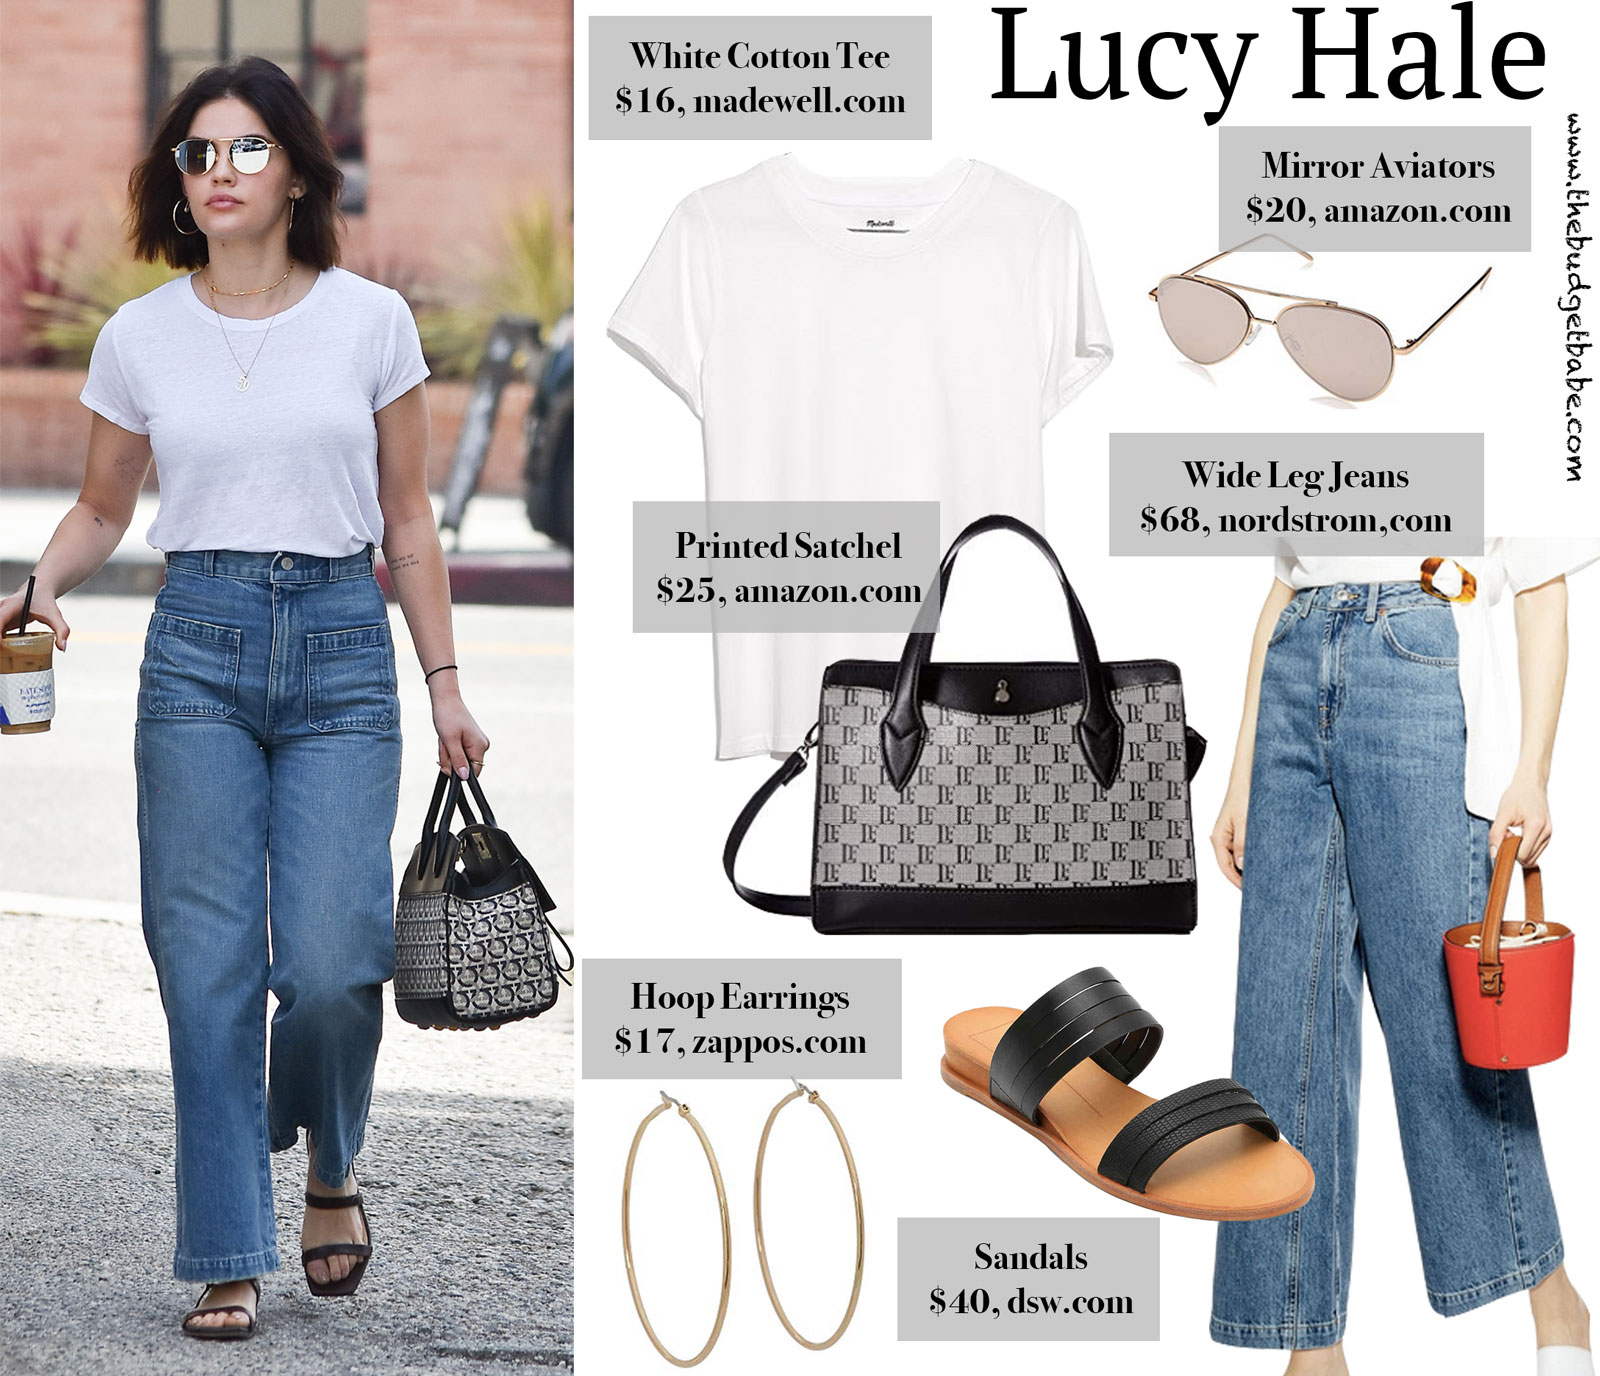 Lucy Hale White Tee and Wide Leg Jeans Look for Less